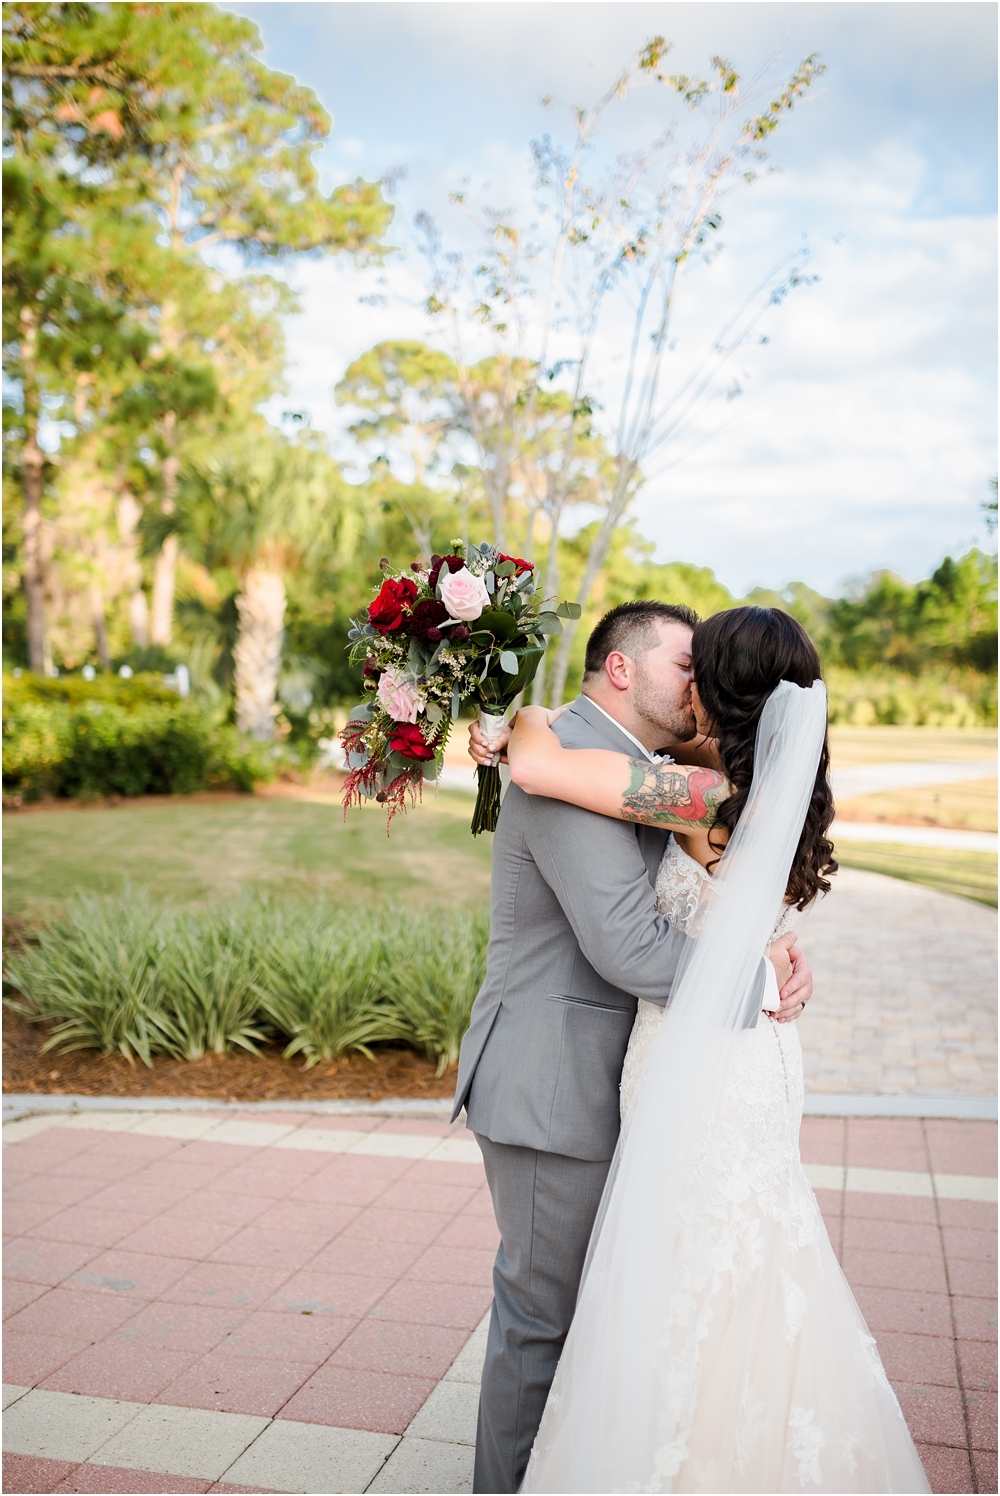 imhof-sheraton-panama-city-beach-florida-wedding-photographer-kiersten-grant-98.jpg